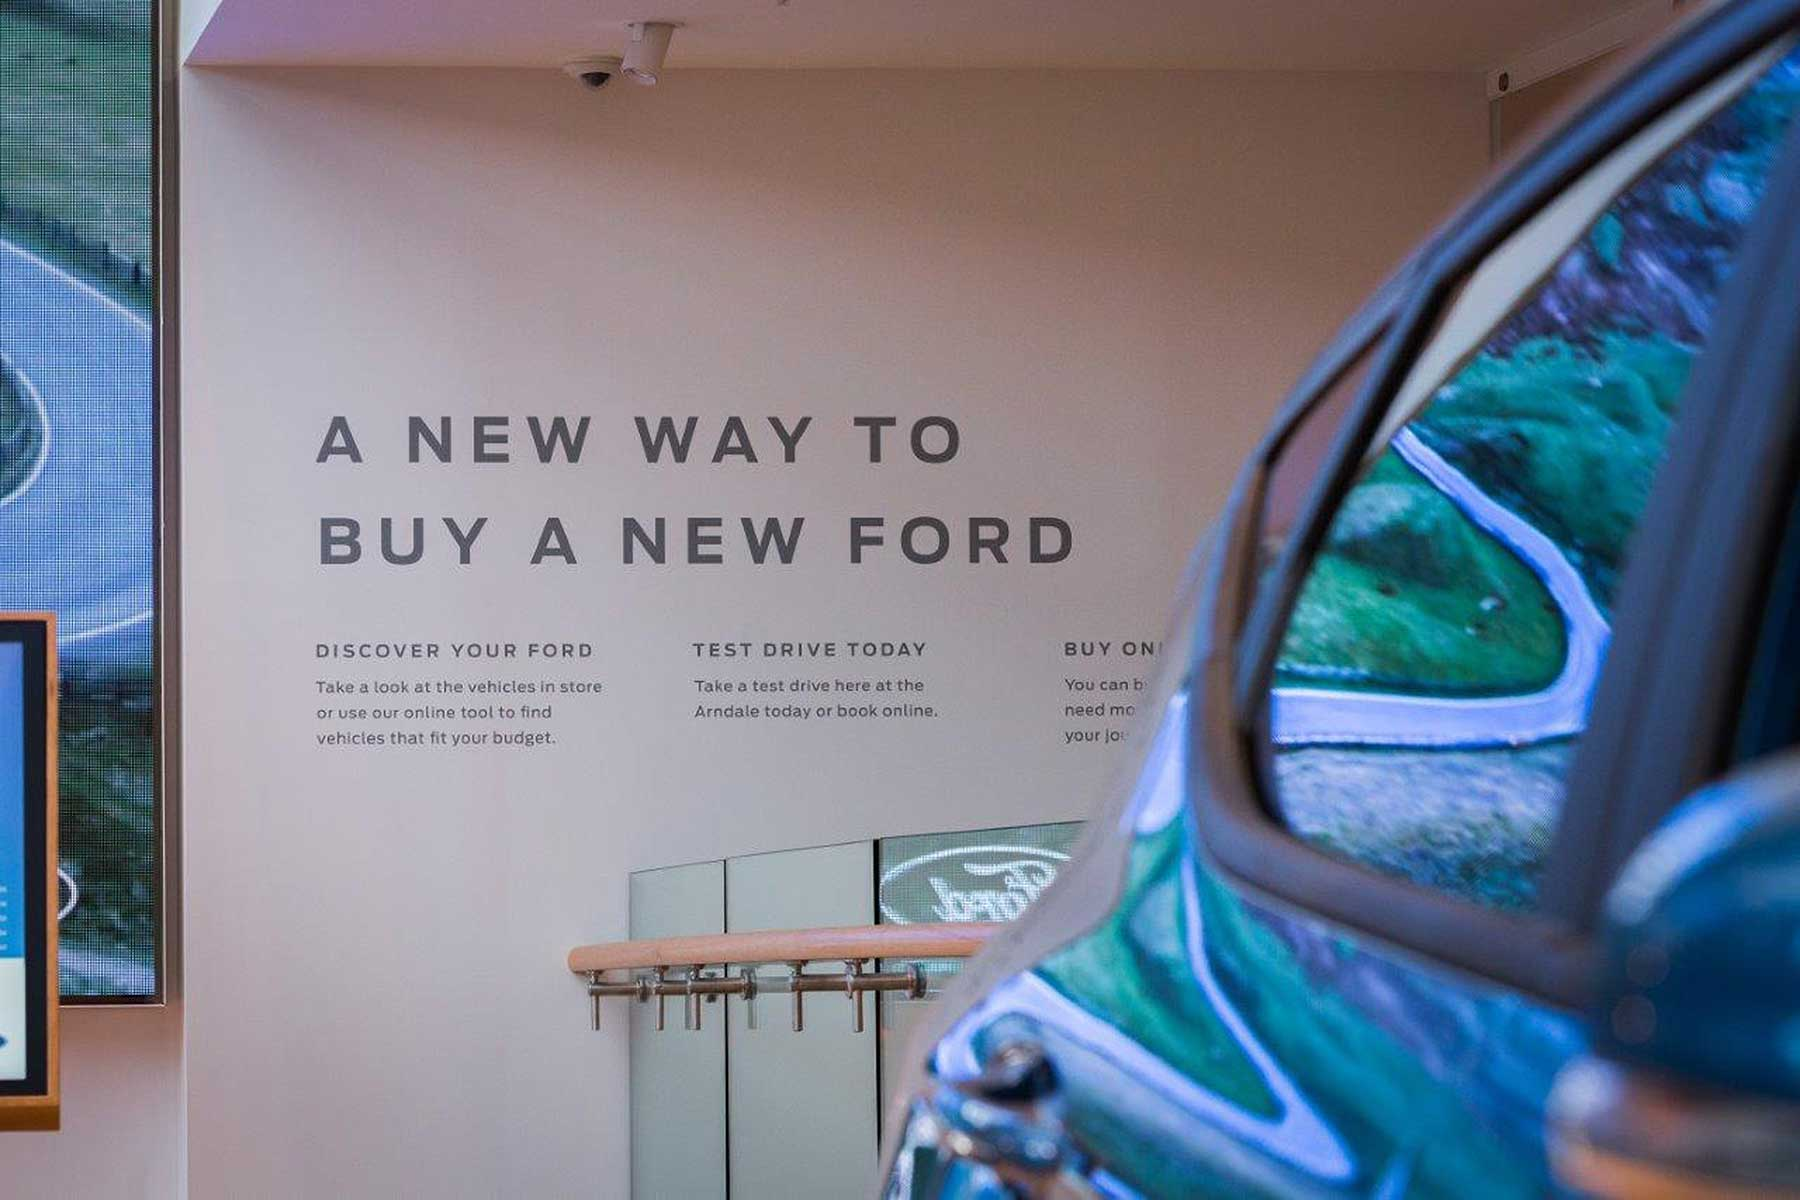 Ford buy online car sales service launched